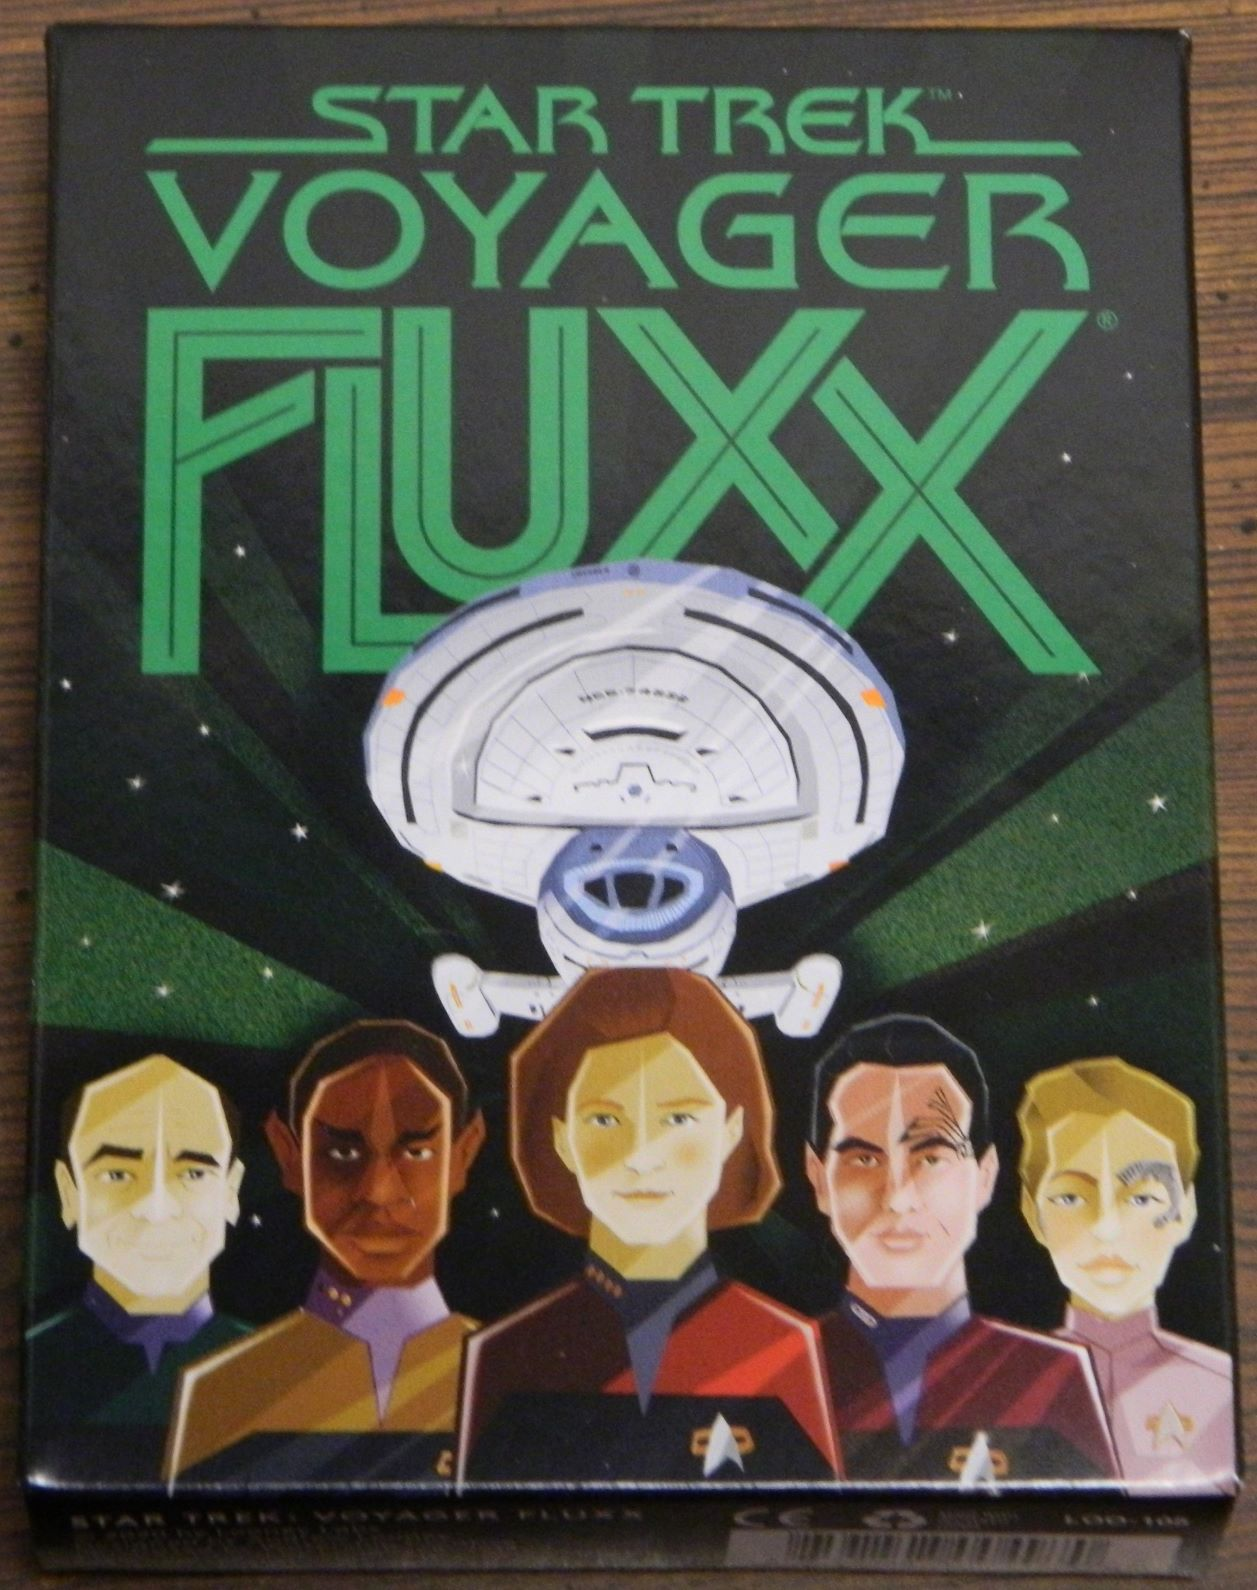 Box for Star Trek: Voyager Fluxx